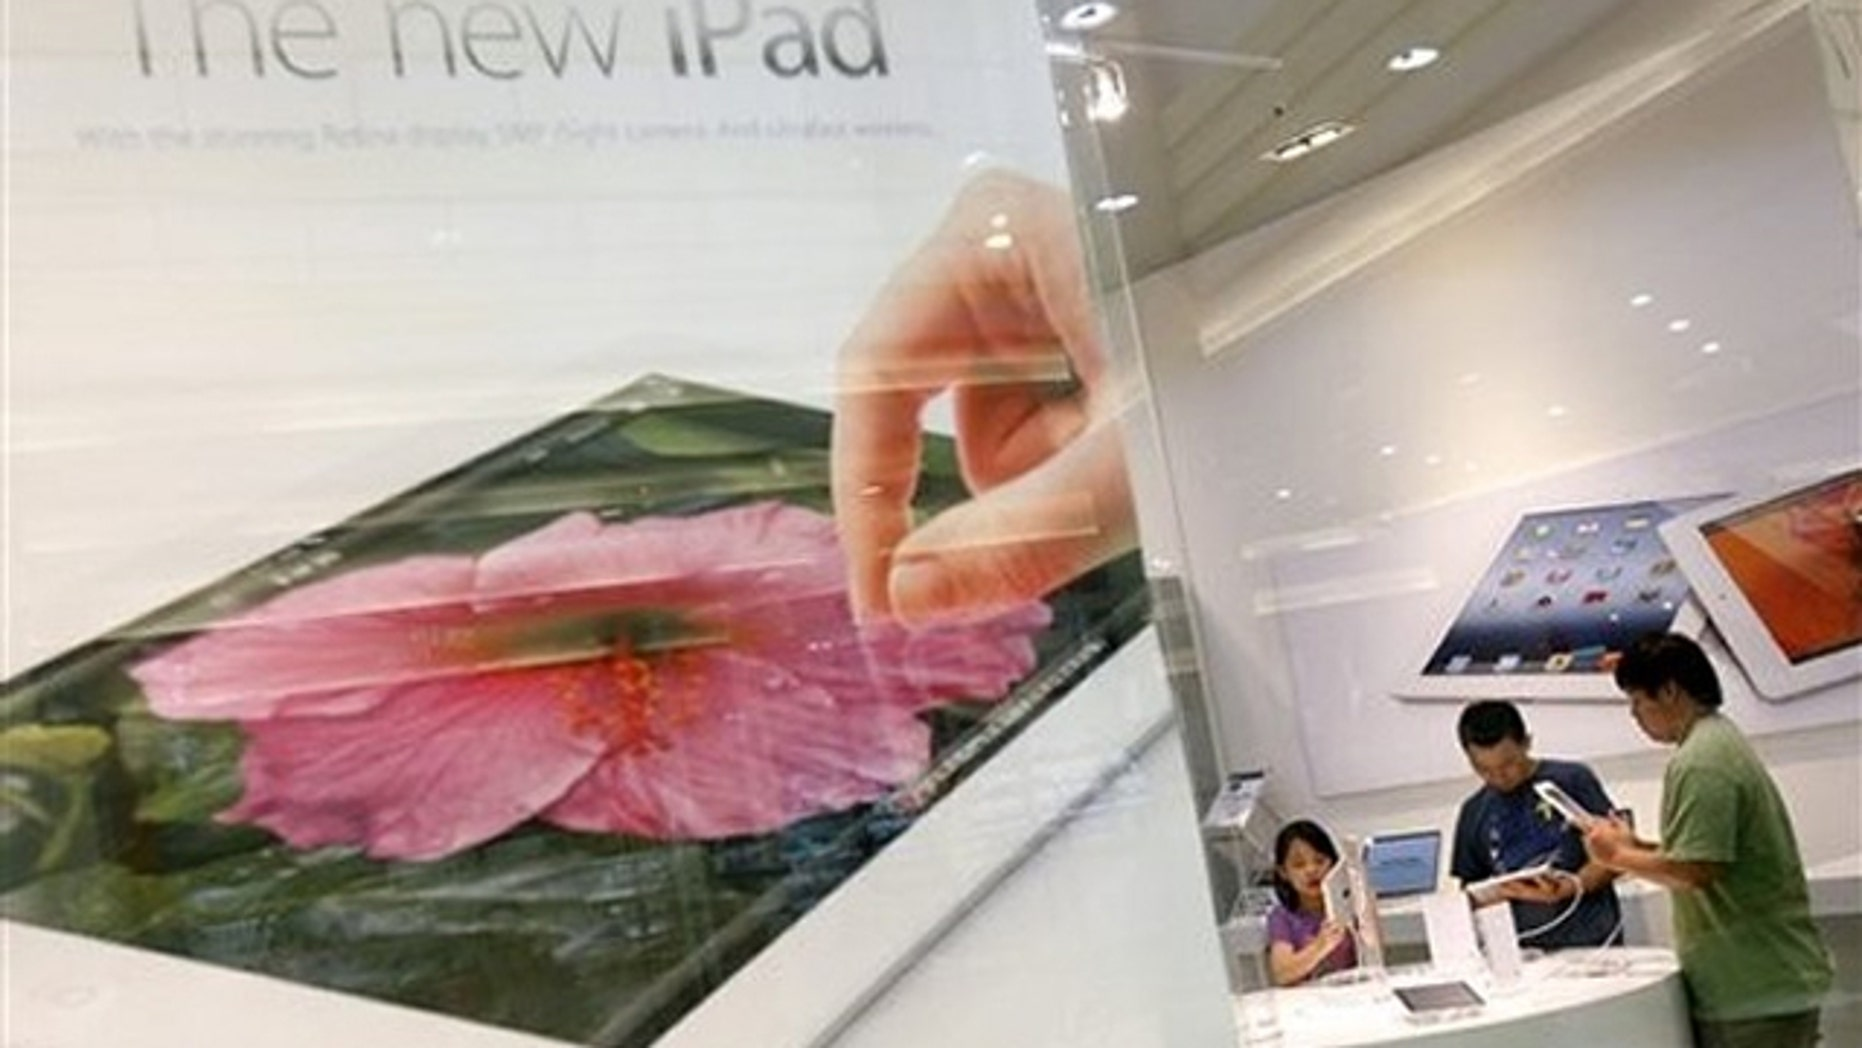 Apple's iPad trademark woes in China continue.